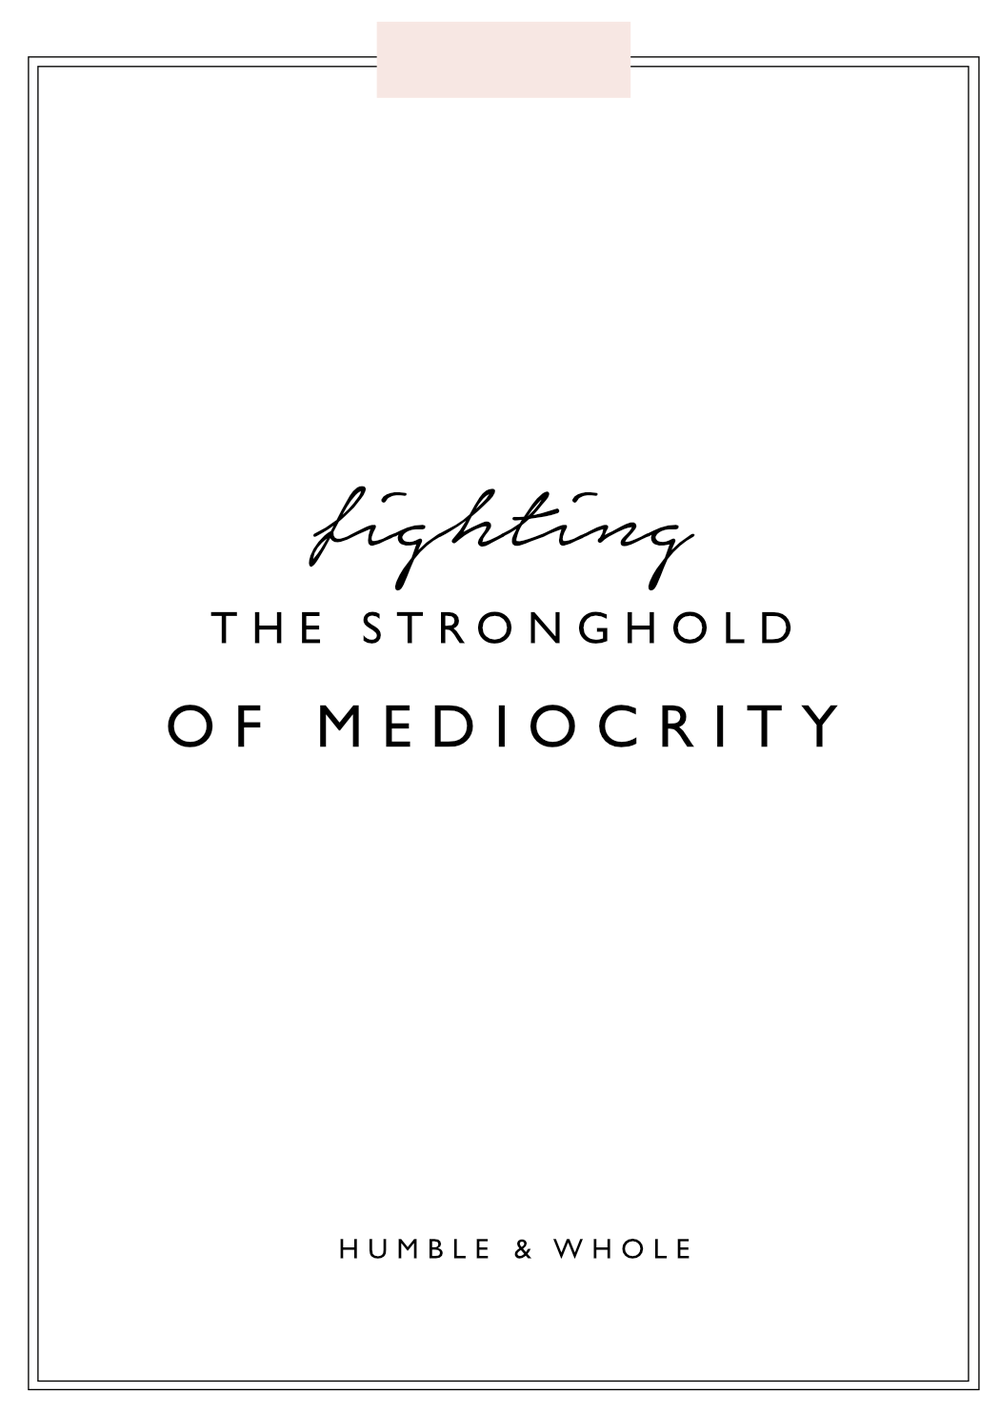 Mediocrity isn't just accepted by society, it's also a stronghold. So many of us are letting our dreams go unachieved to settle for the safety of mediocrity. But it's time for you to step out on faith! Click through to discover how you can leave mediocrity behind you where it belongs!